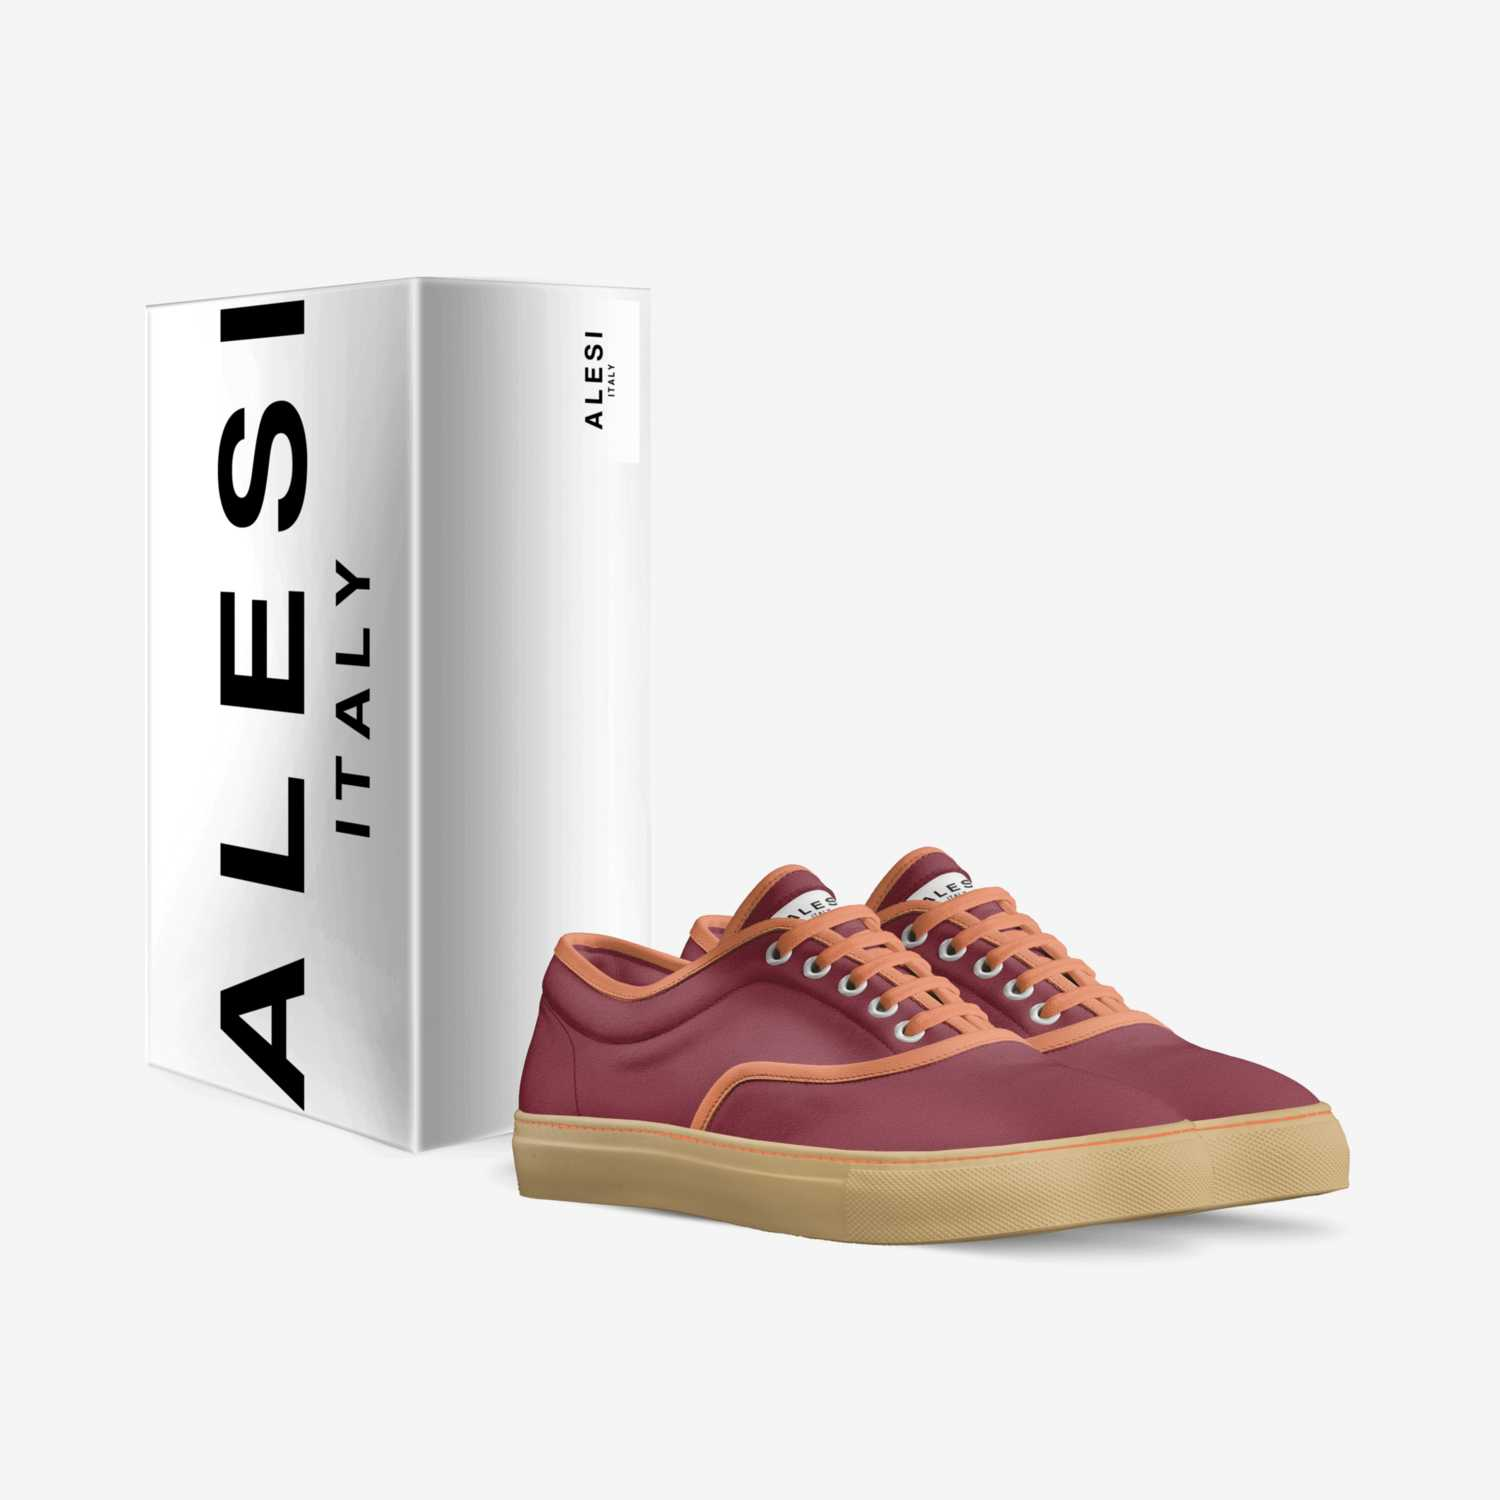 Alesi Skater custom made in Italy shoes by Lonanthony Parker   Box view